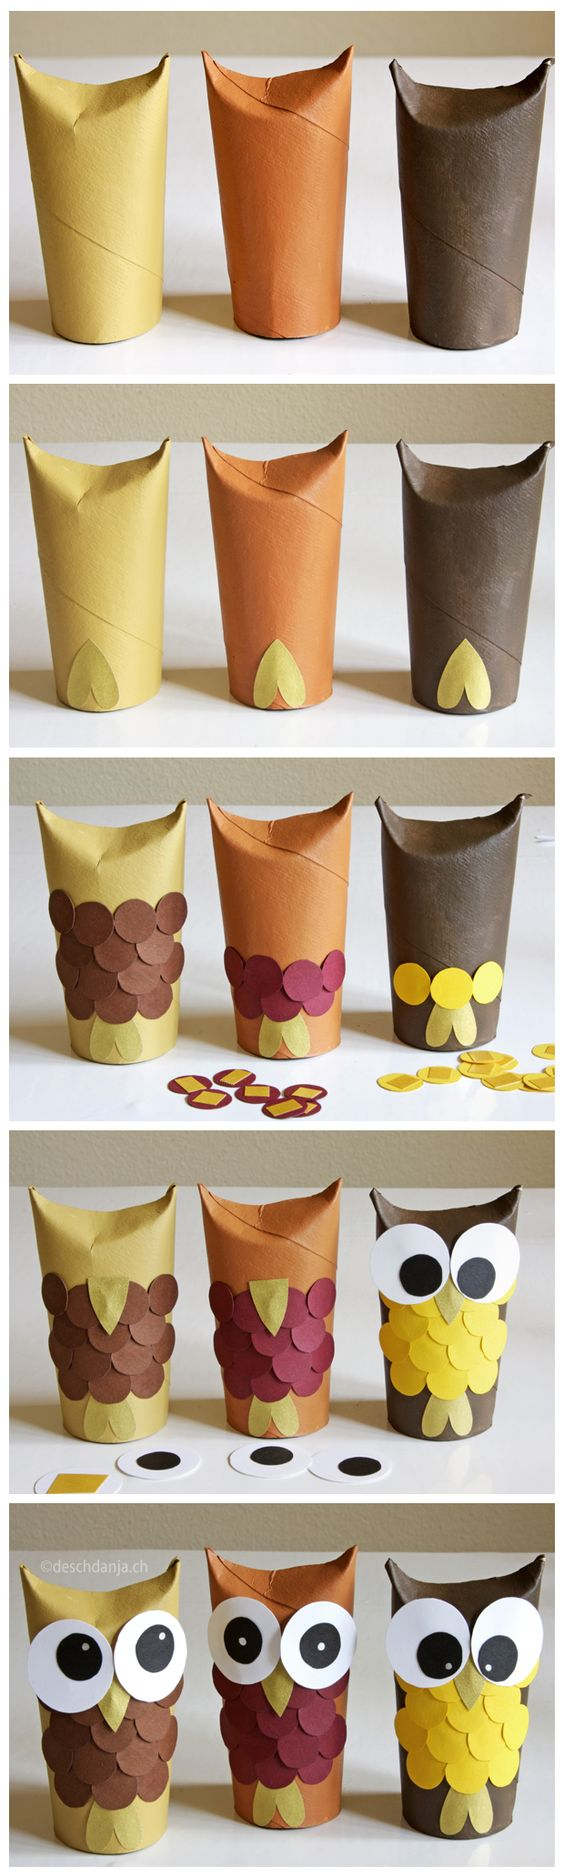 Toilet paper roll owls: